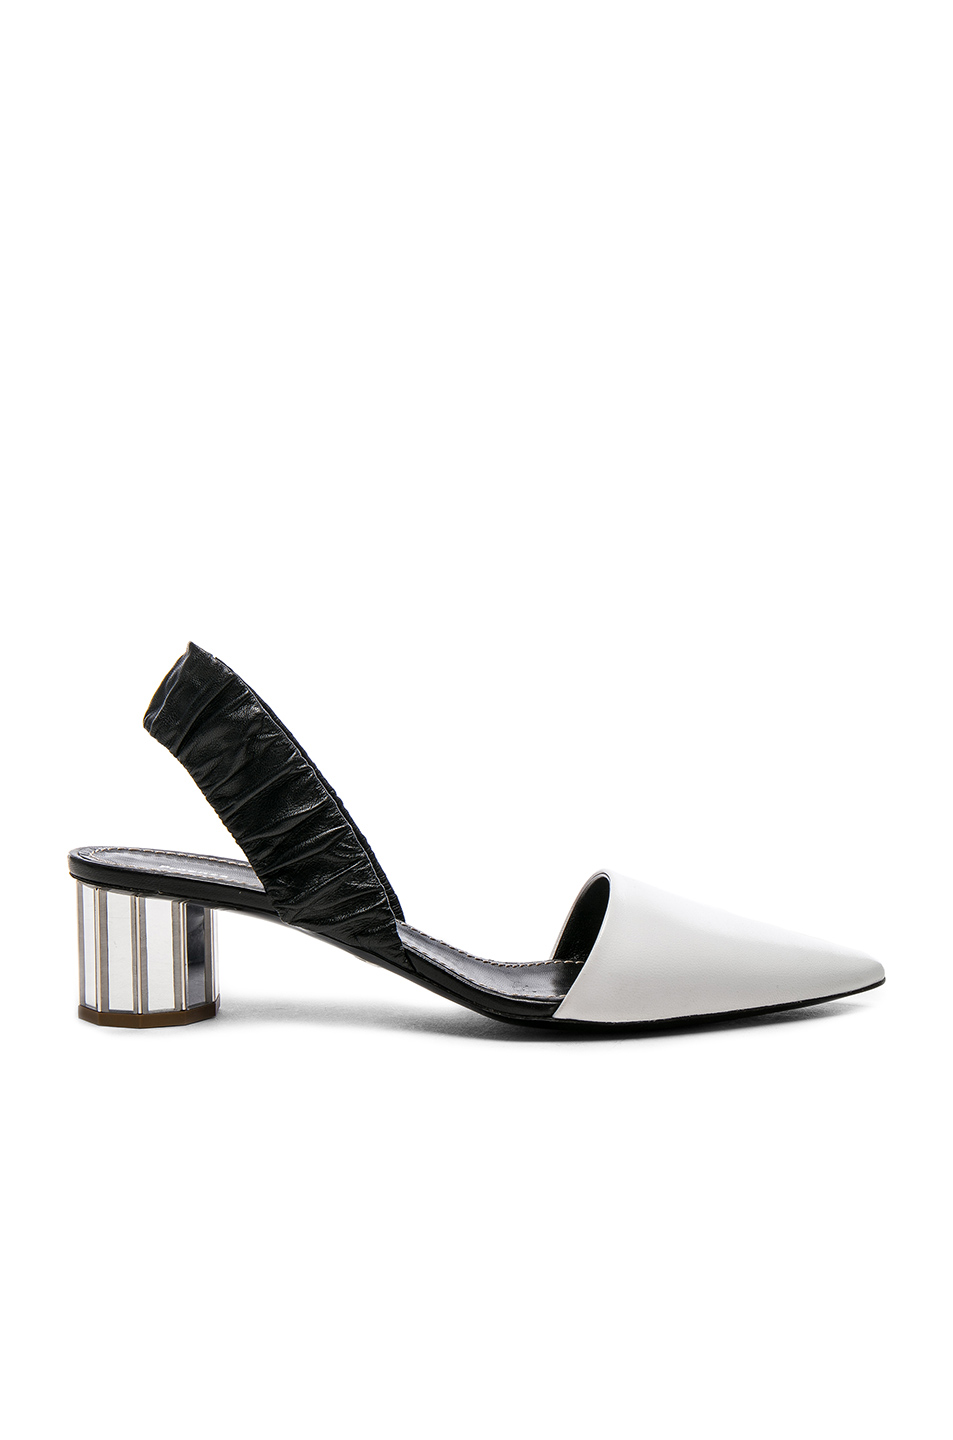 0a614822c75 Proenza Schouler Metallic Textured-Leather Pumps In White